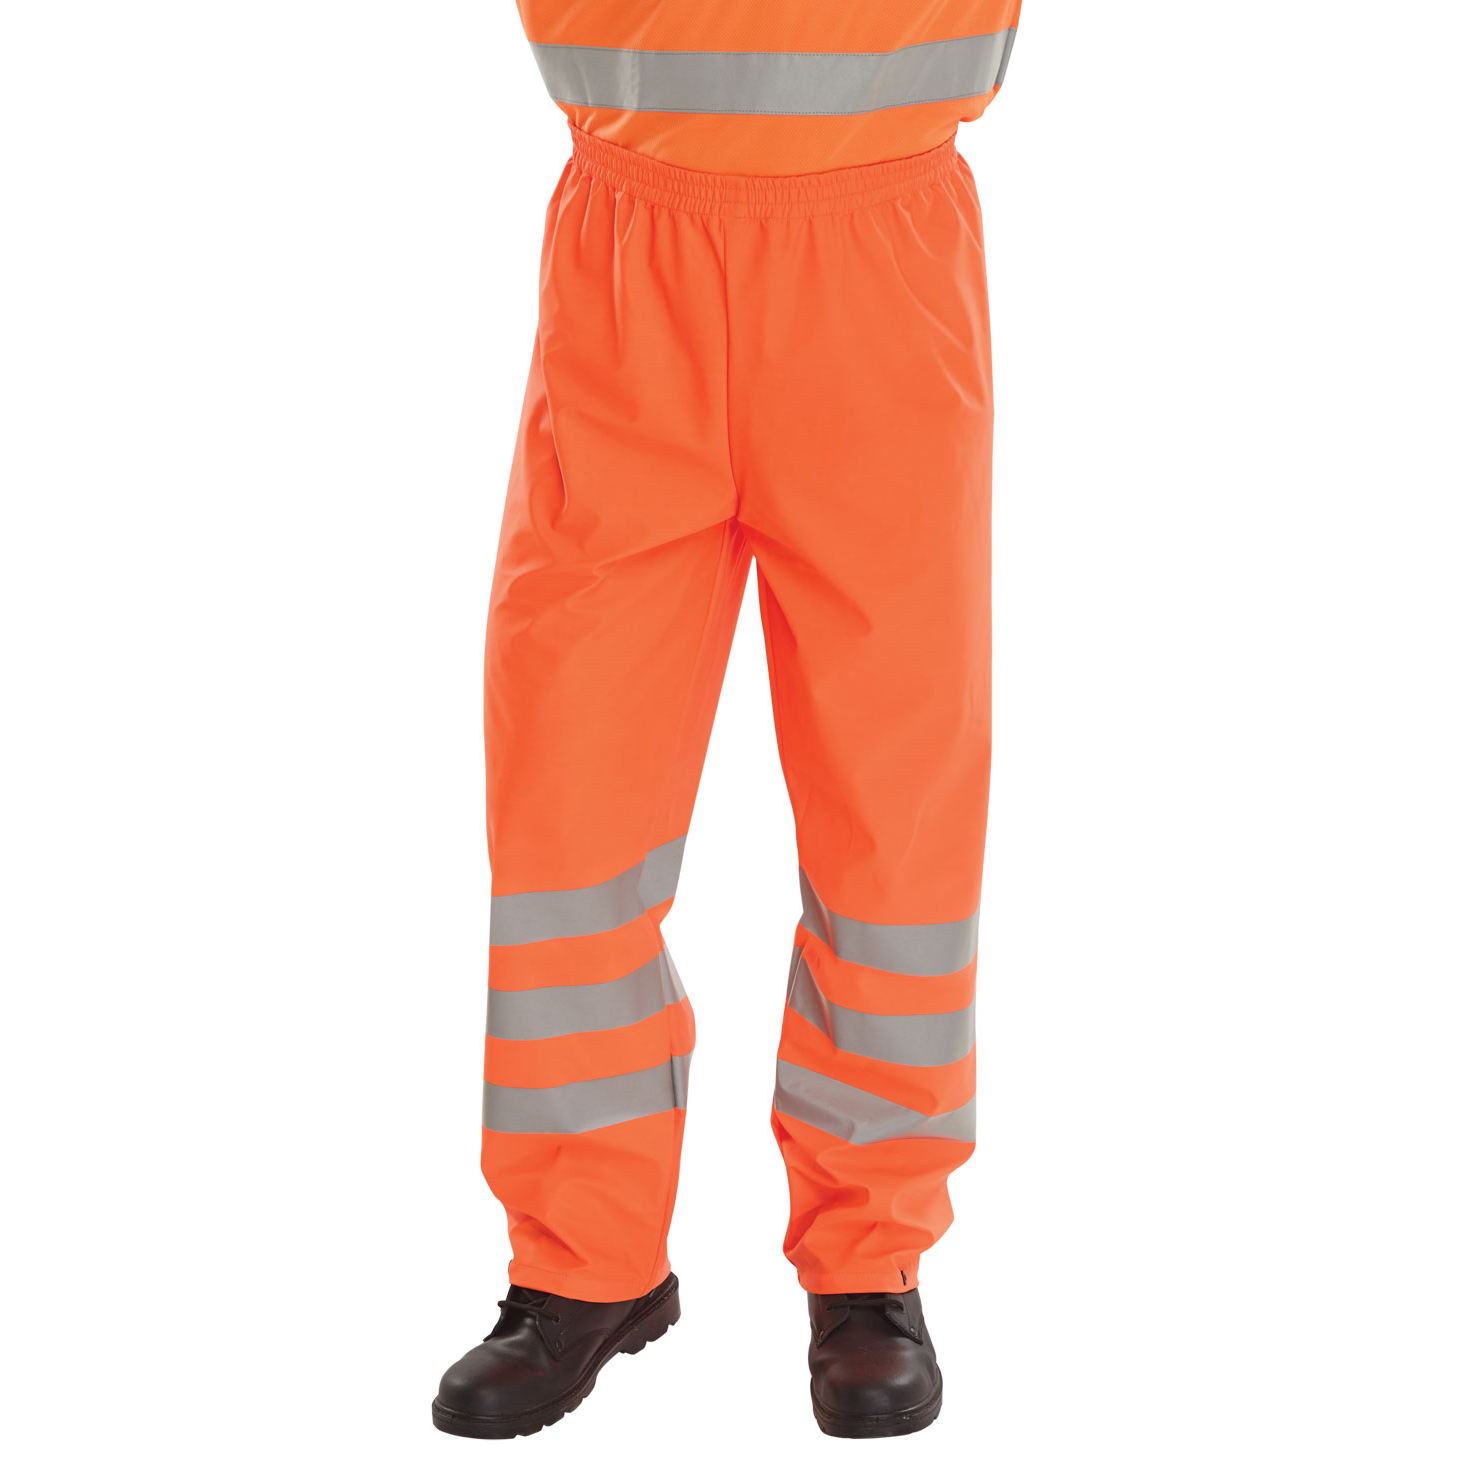 BSeen Over Trousers PU Hi-Vis Reflective XL Orange Ref PUT471ORXL Up to 3 Day Leadtime